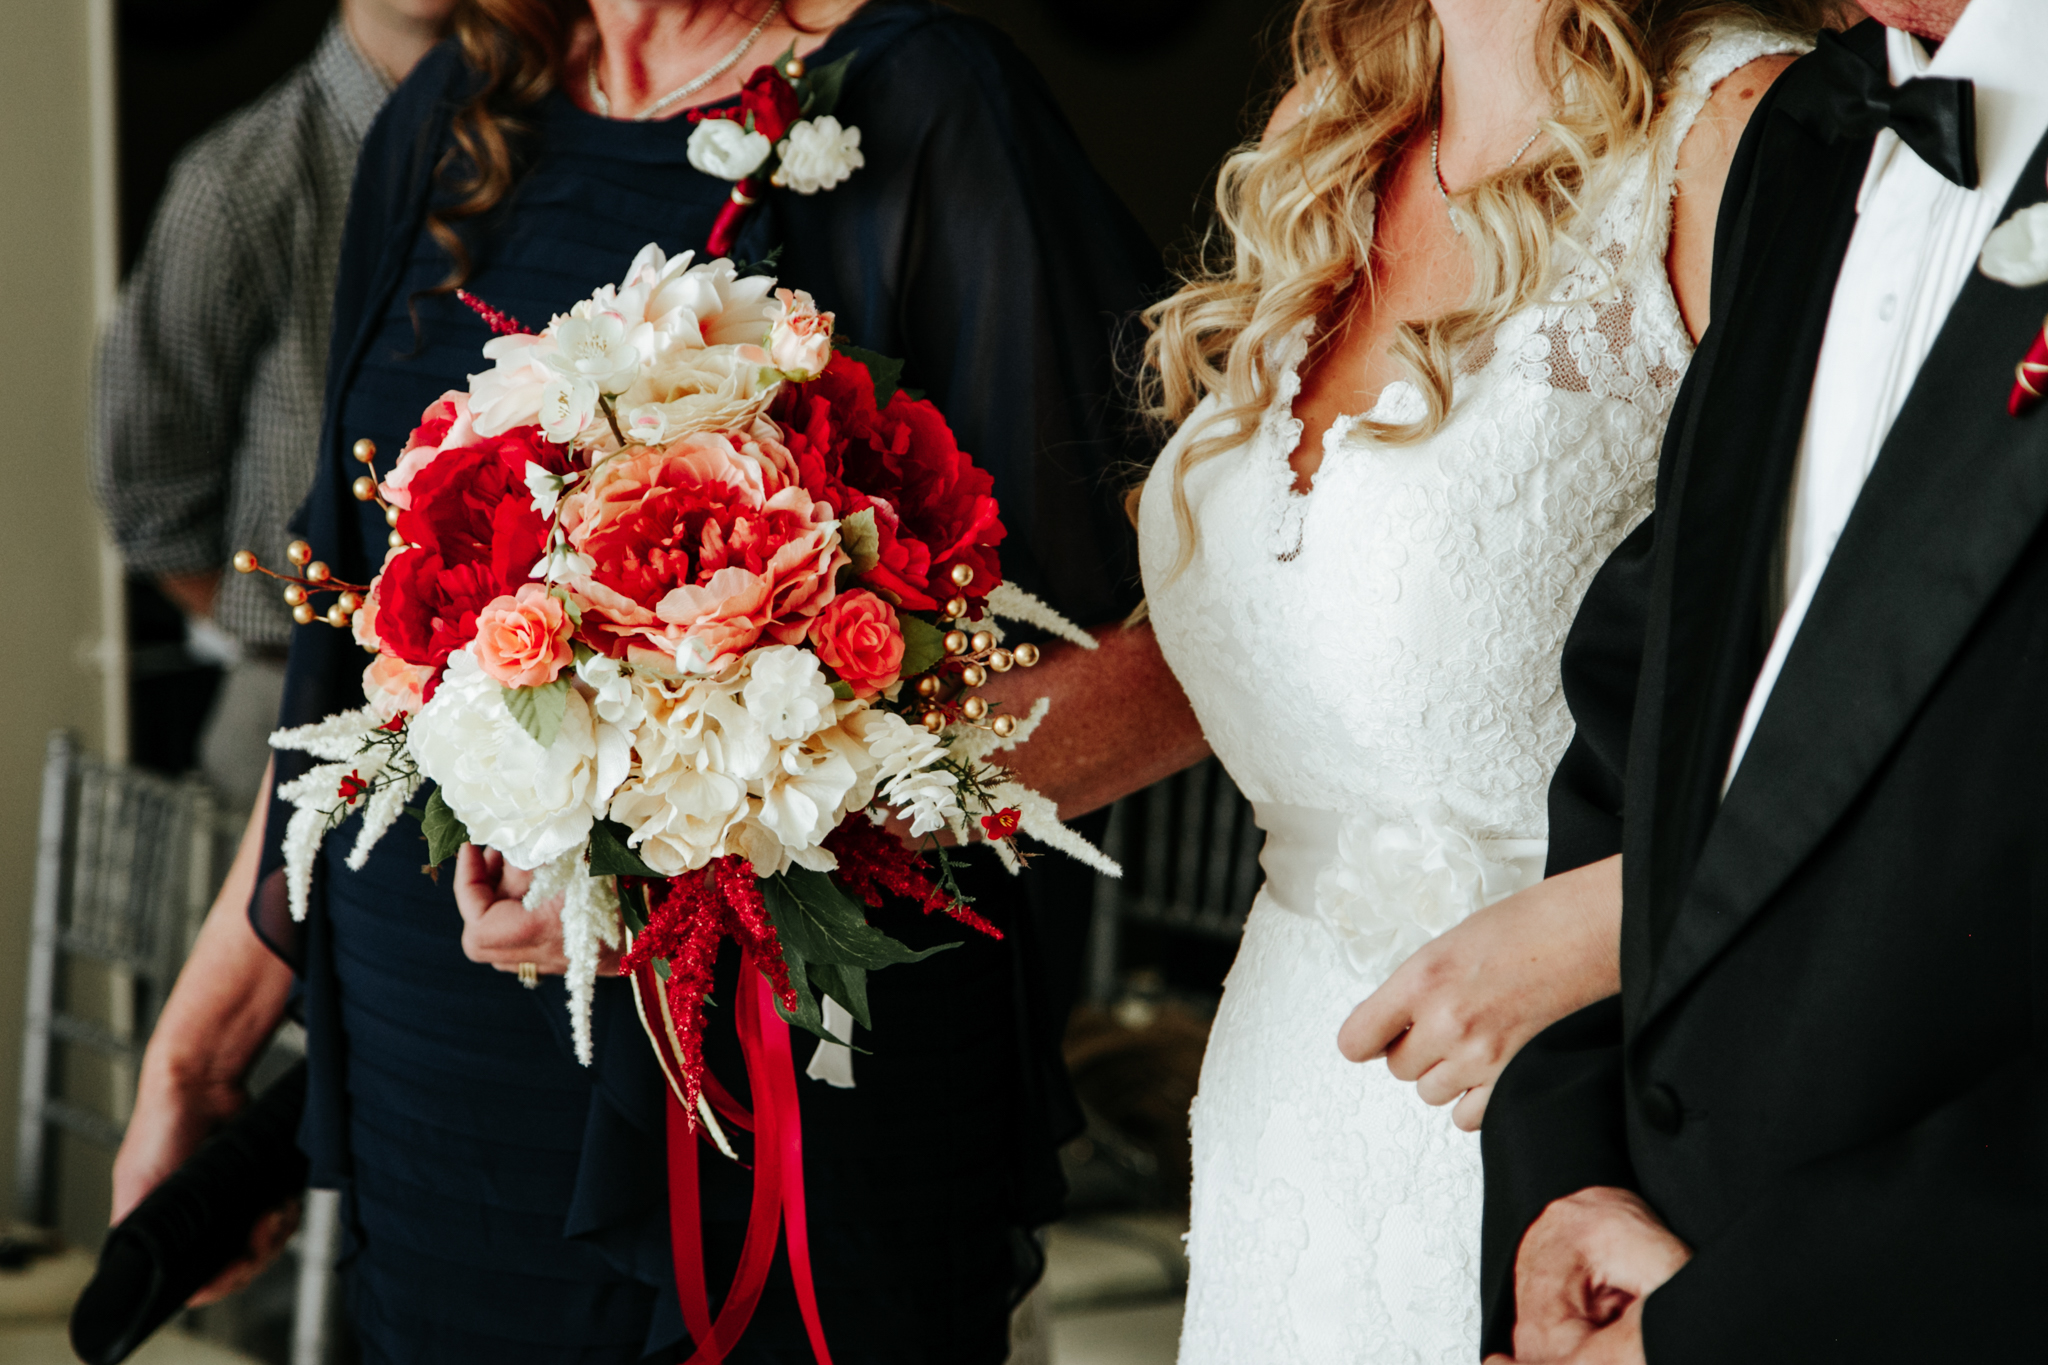 lethbridge-wedding-photography-love-and-be-loved-rocky-mountain-turf-club-ceremony-picture-image-photo-6.jpg